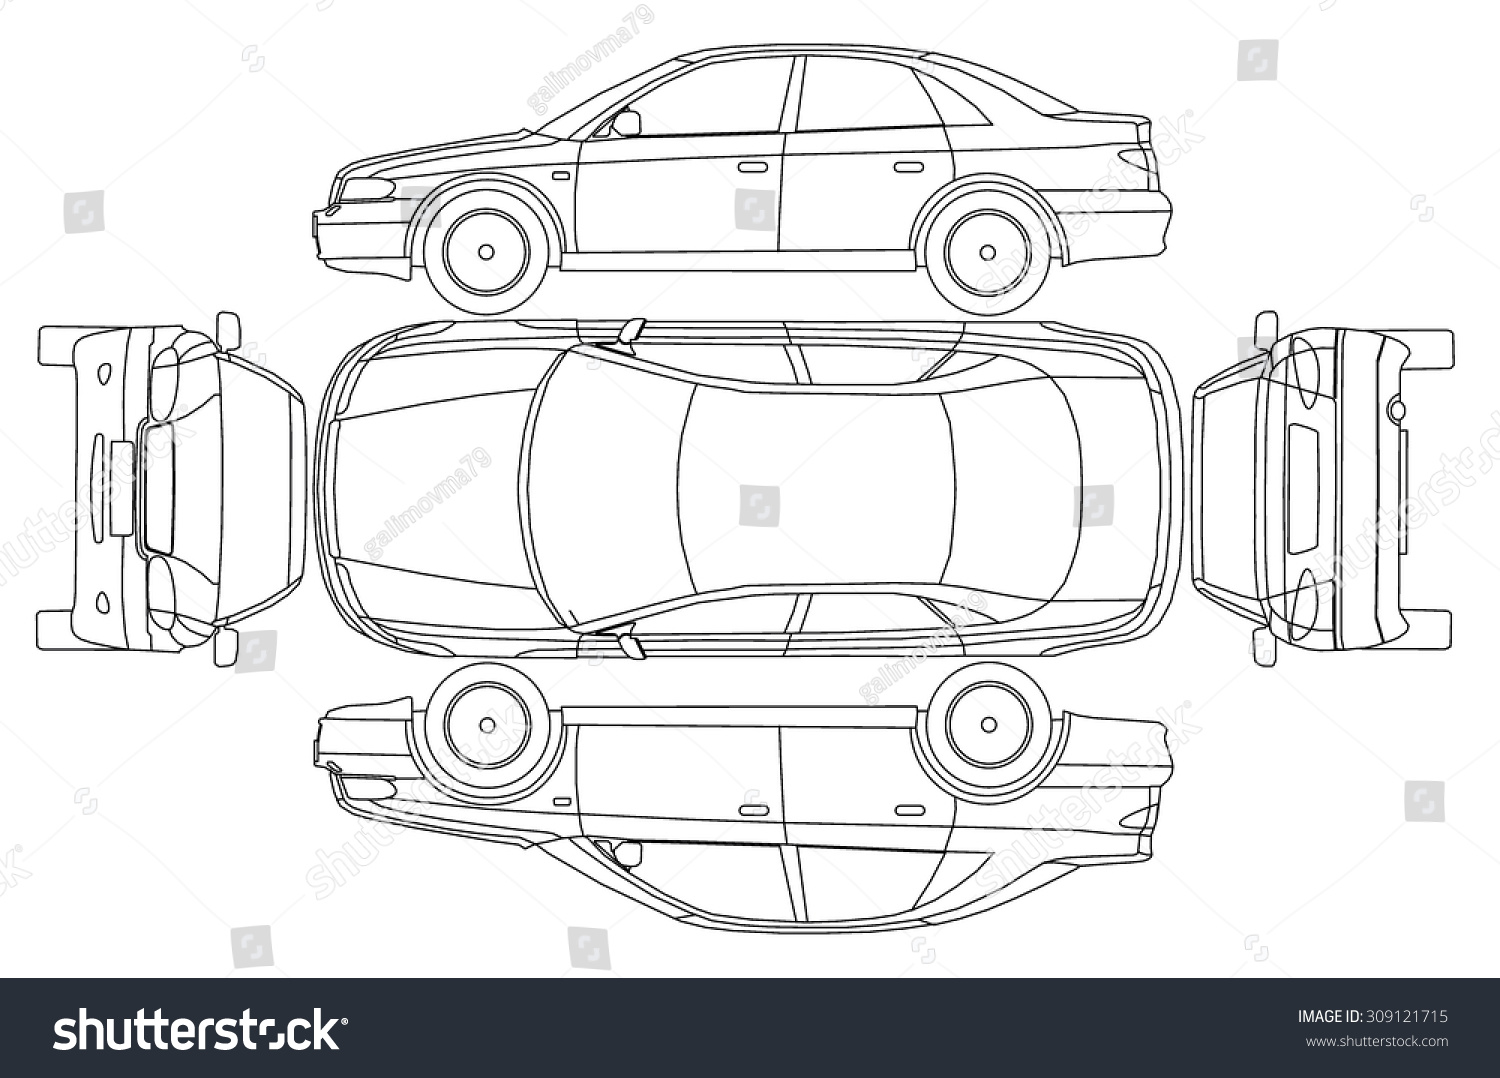 car line draw insurance rent damage stock vector 309121715 shutterstock. Black Bedroom Furniture Sets. Home Design Ideas